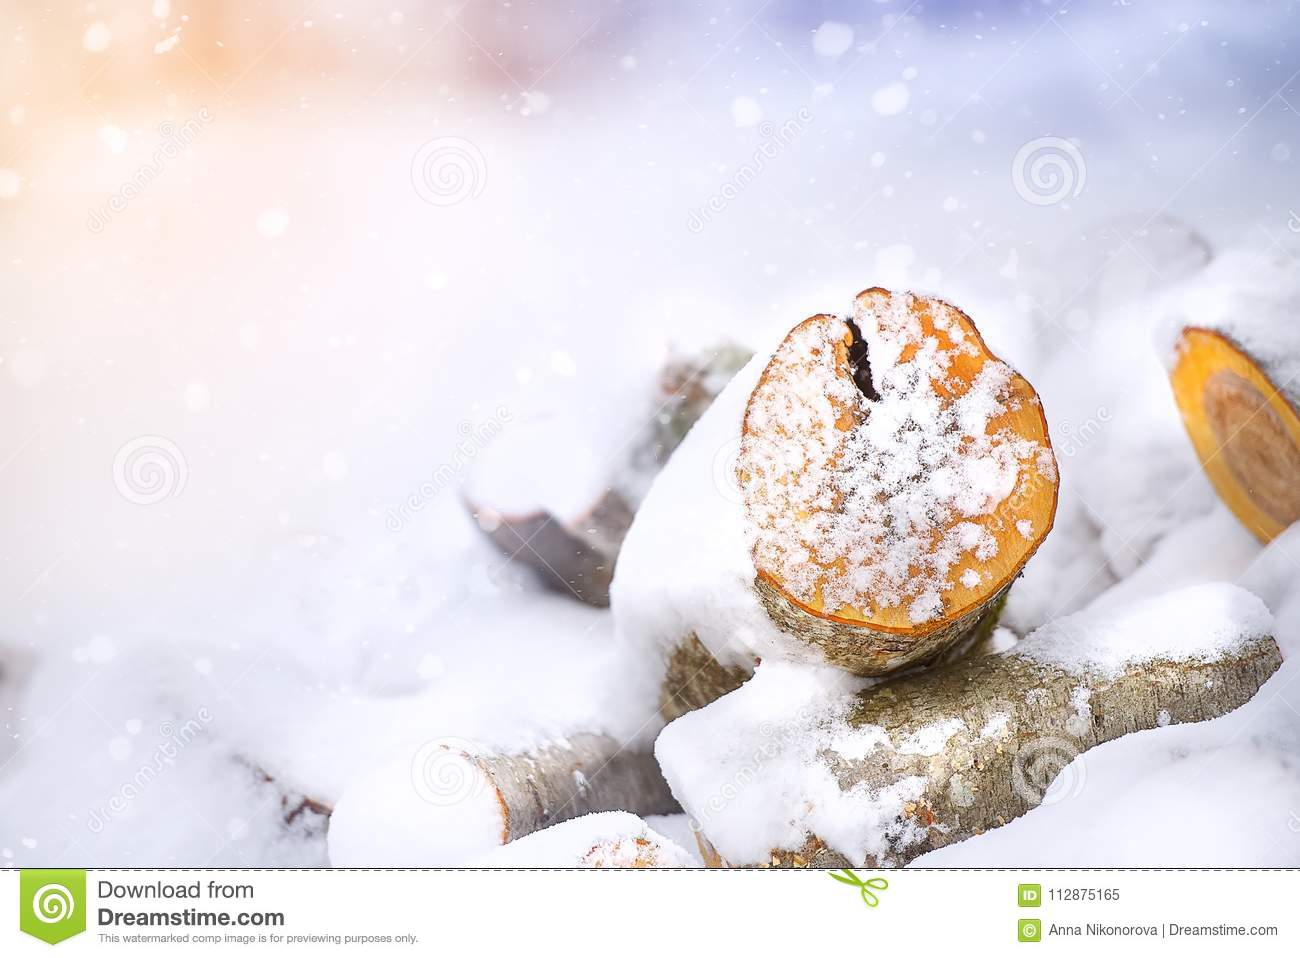 Wooden logs in winter snow